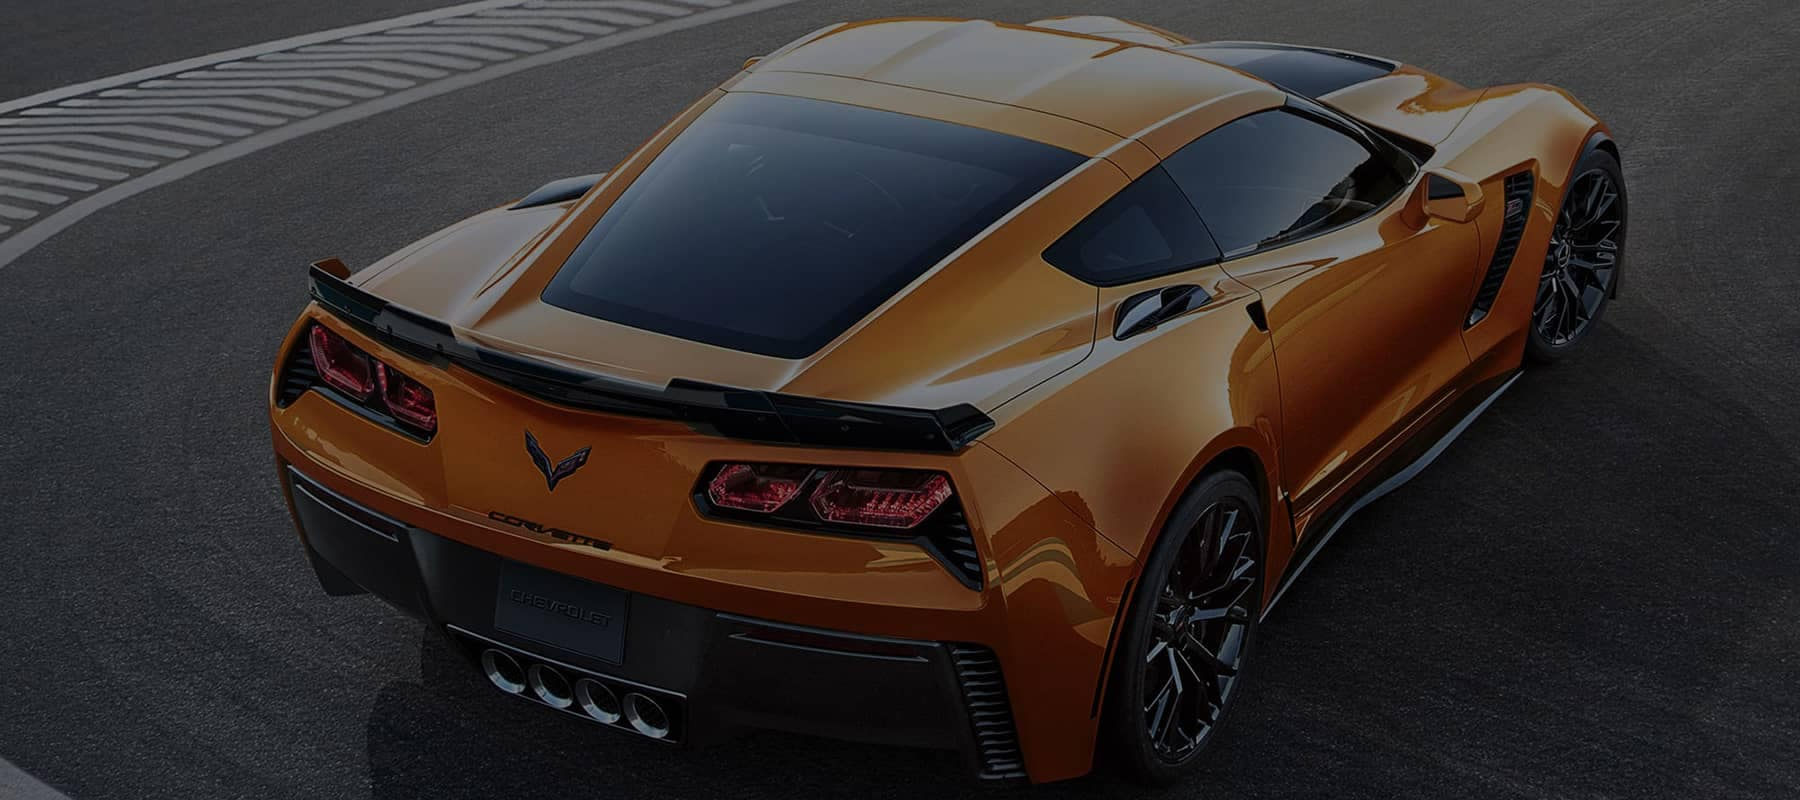 2019 Chevrolet Corvette Z06 Highlights